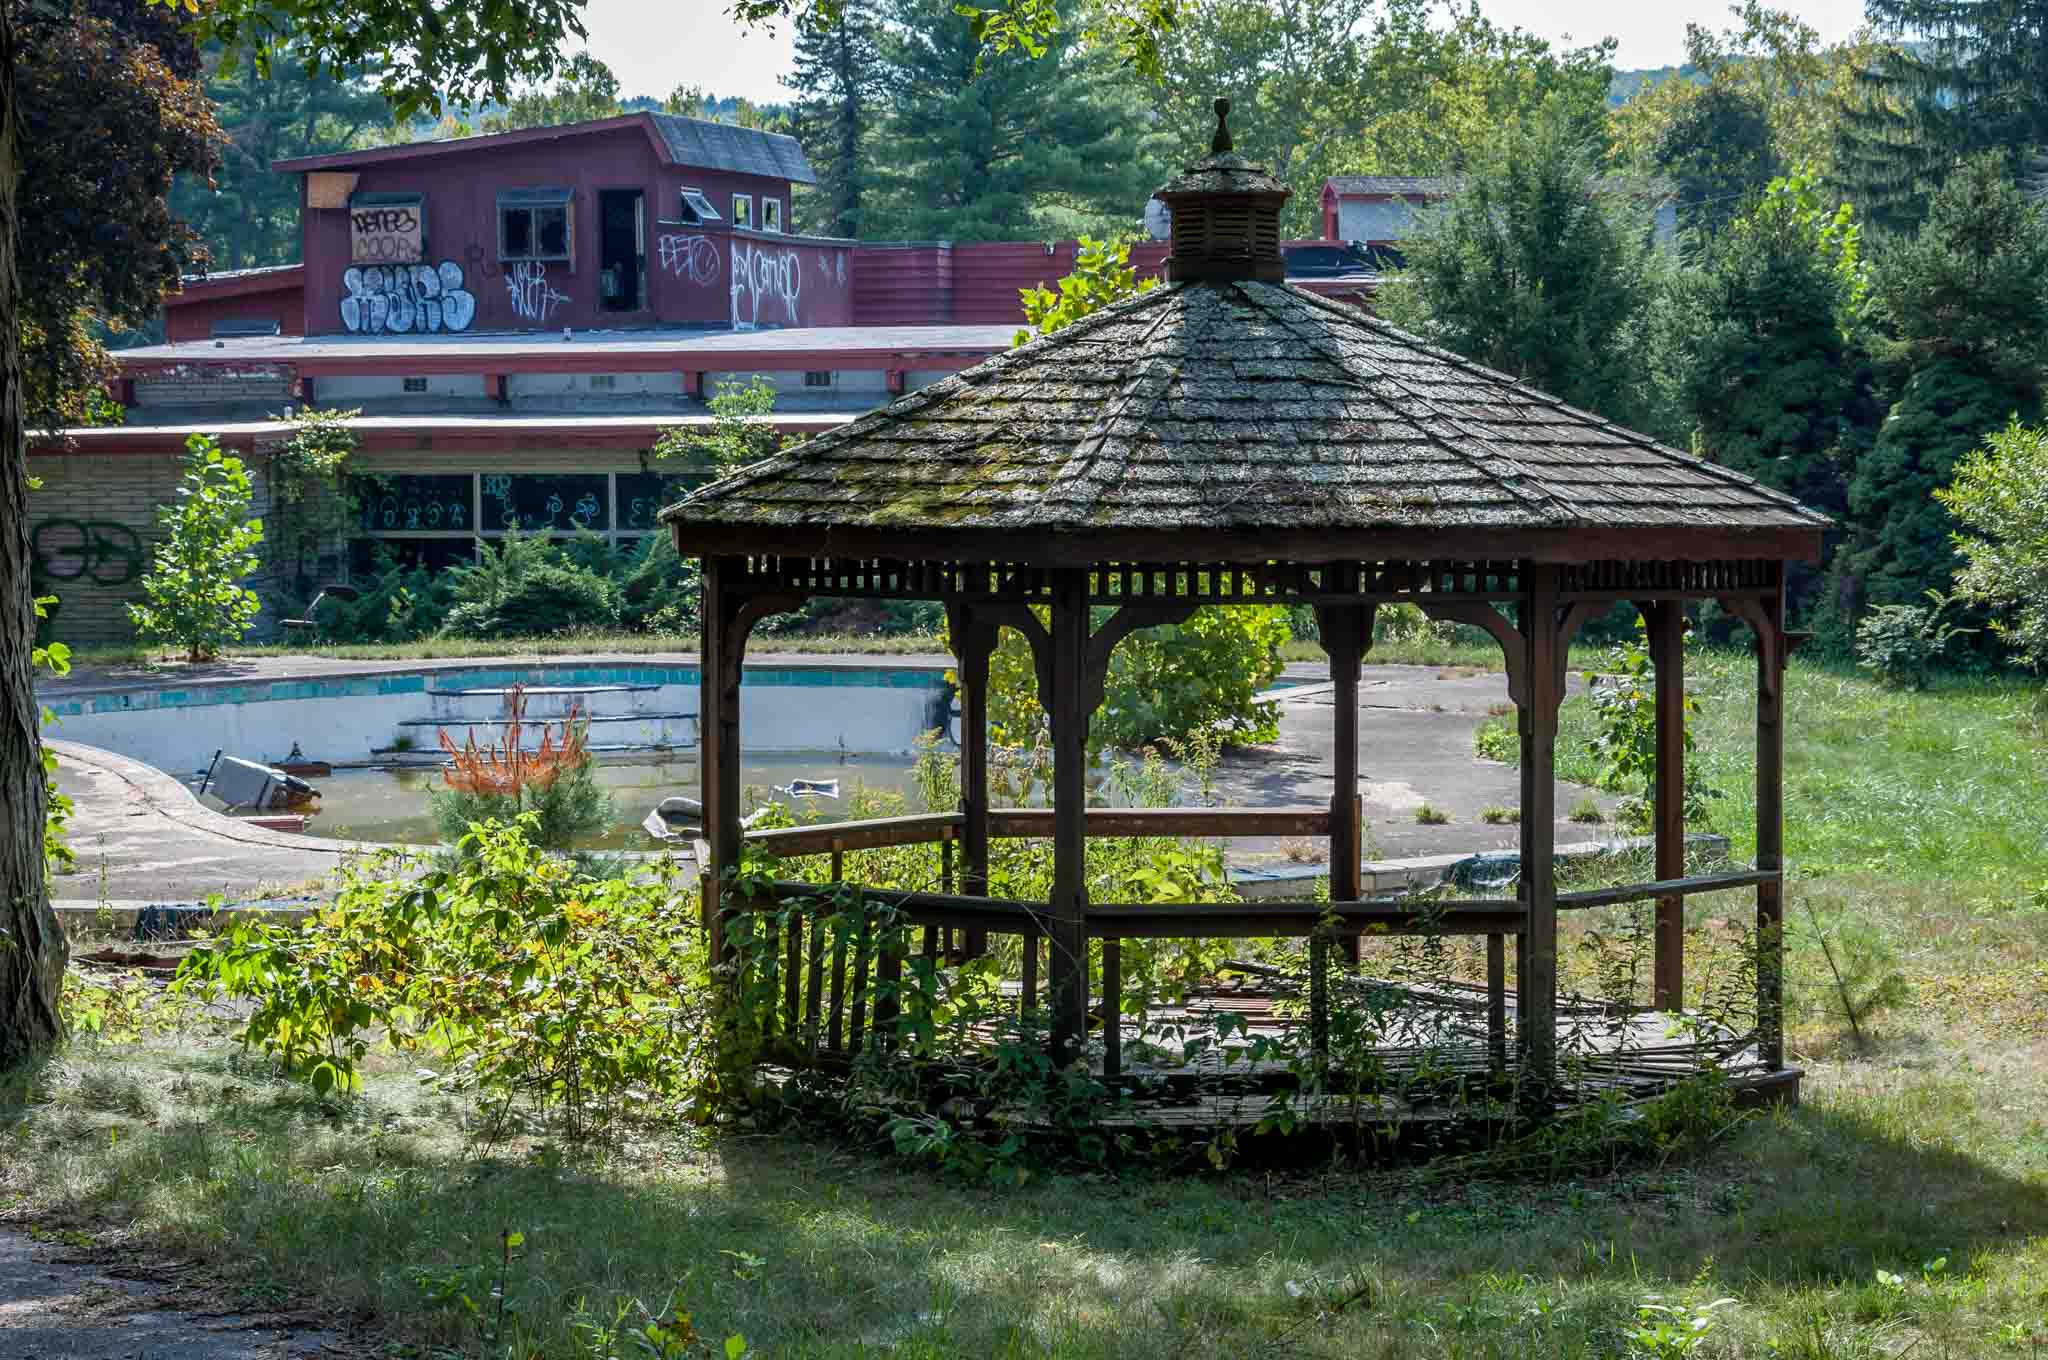 A gazebo at one of the abandoned resorts in Pennsylvania